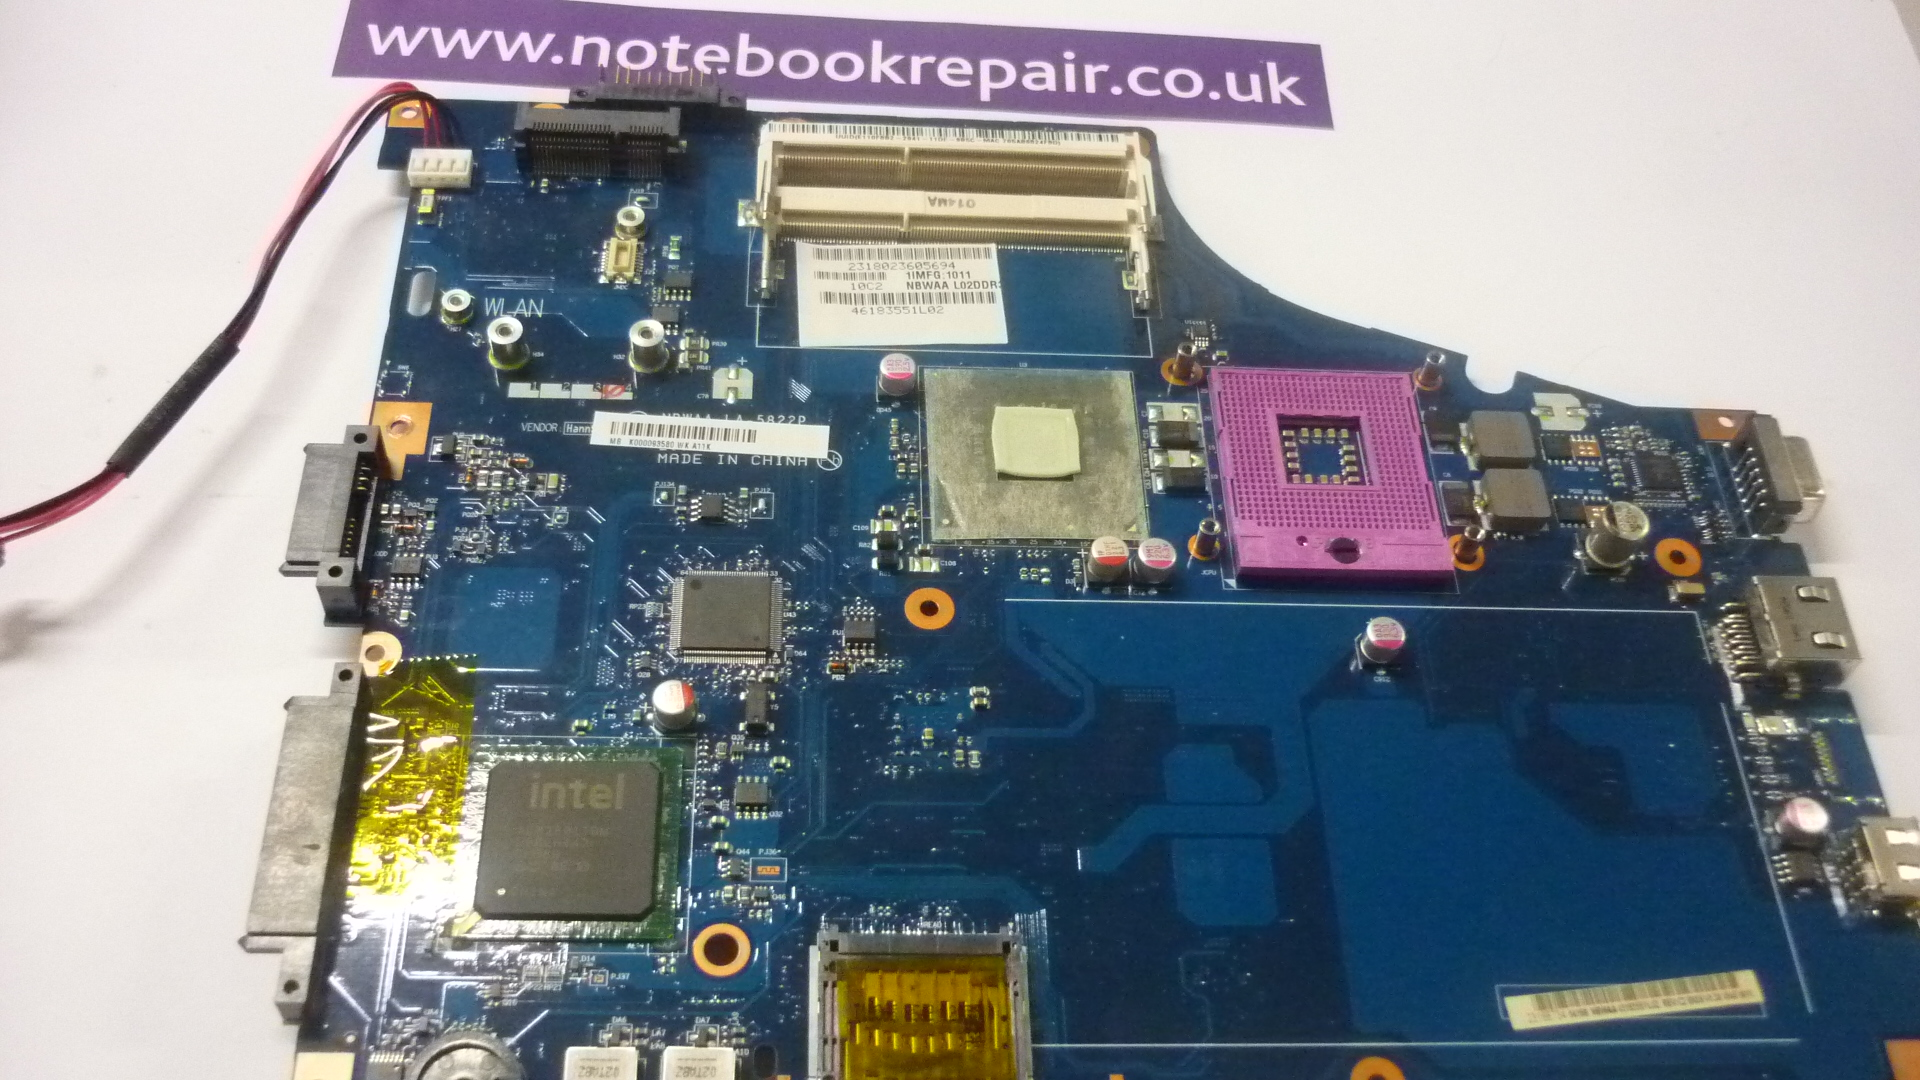 TOSHIBA L450-179 motherboard